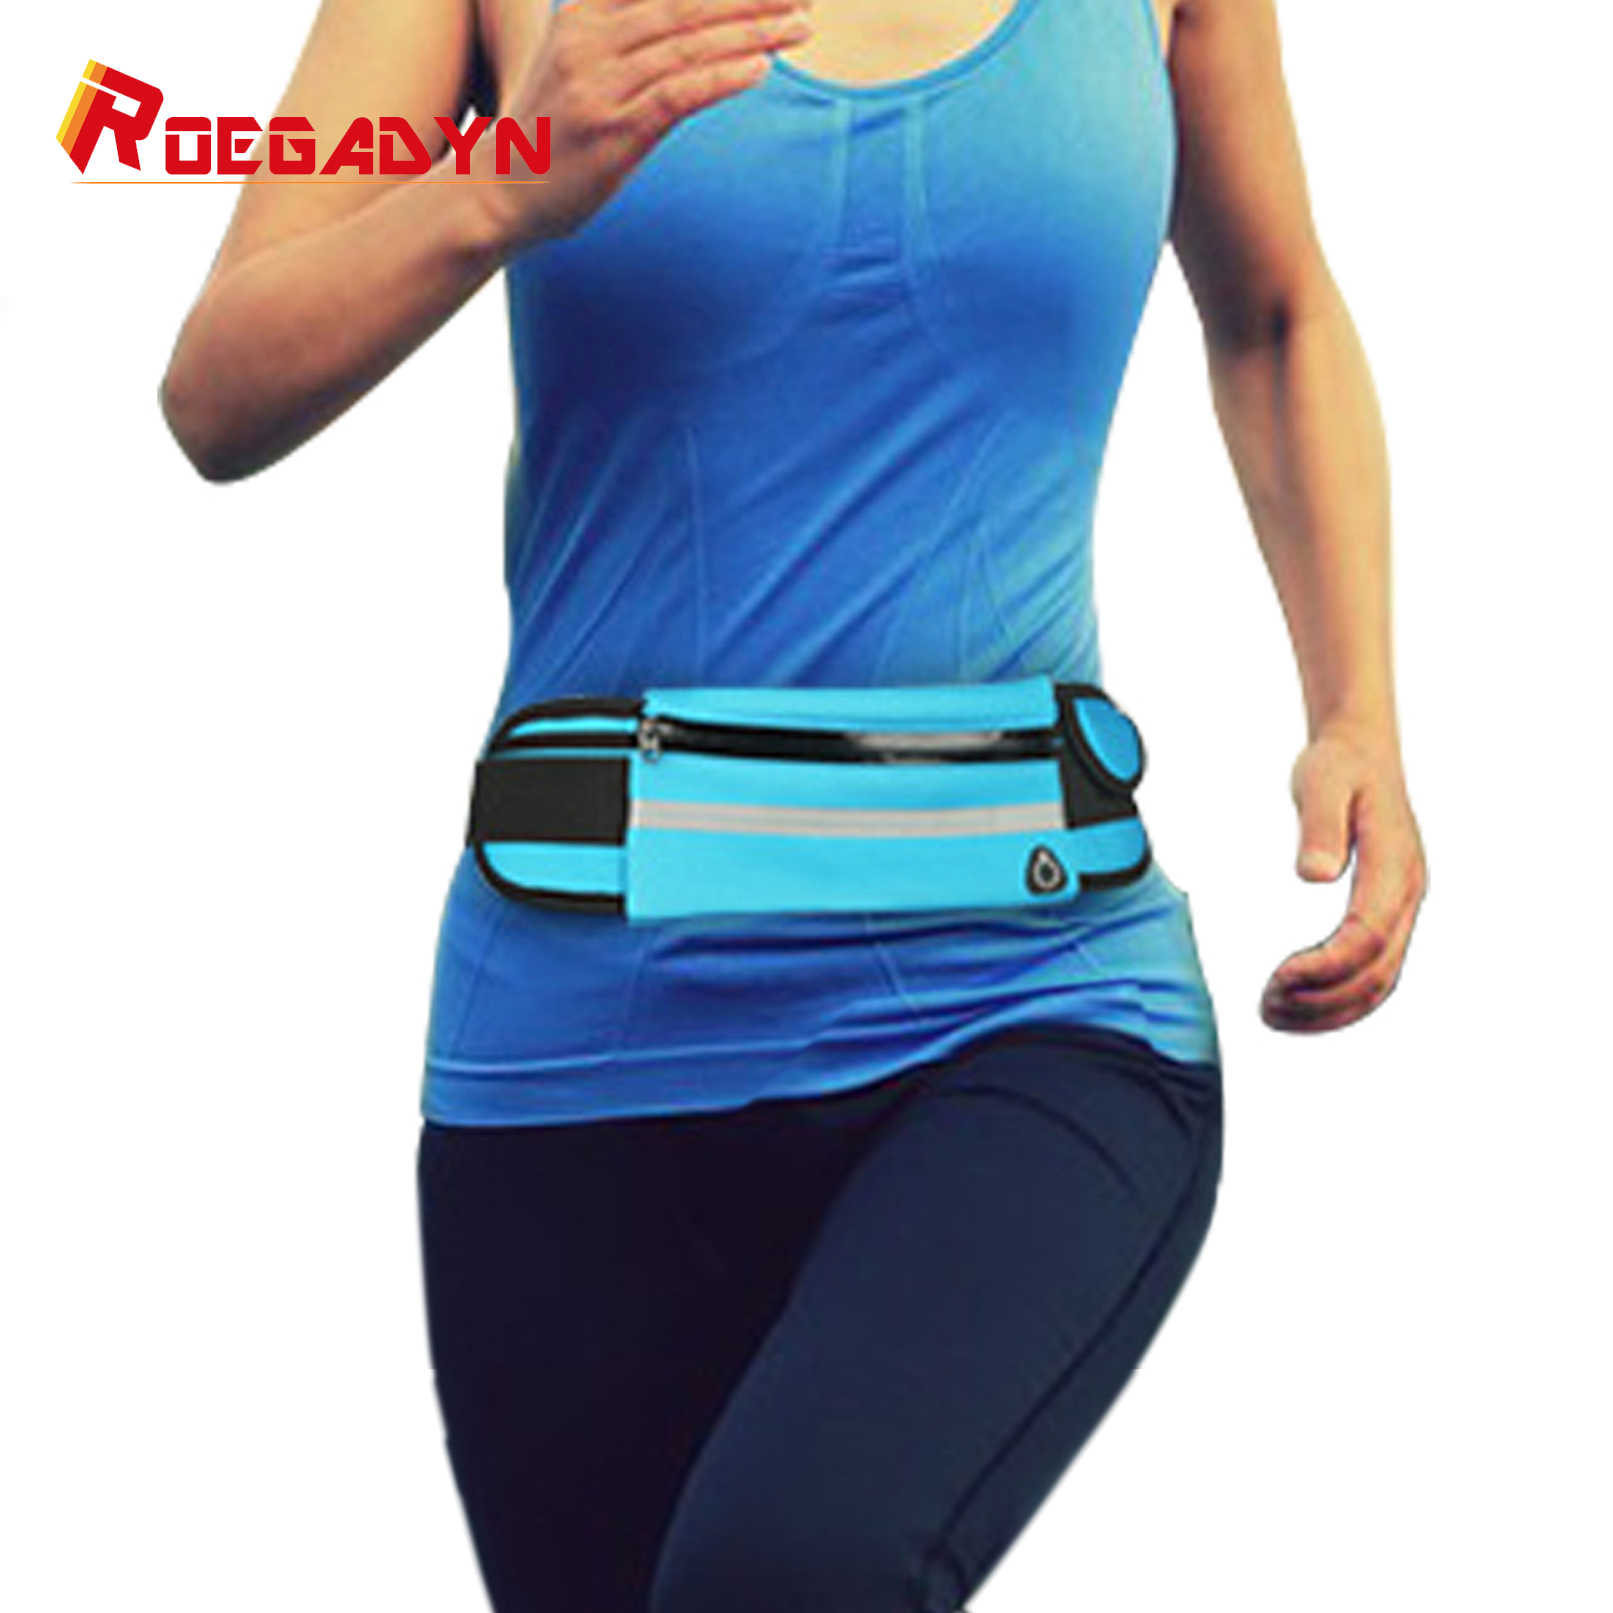 Men Women Fitness Fanny Packs Pouch Mobile Phone Holder Jogging Sports Running Waist Water Bag